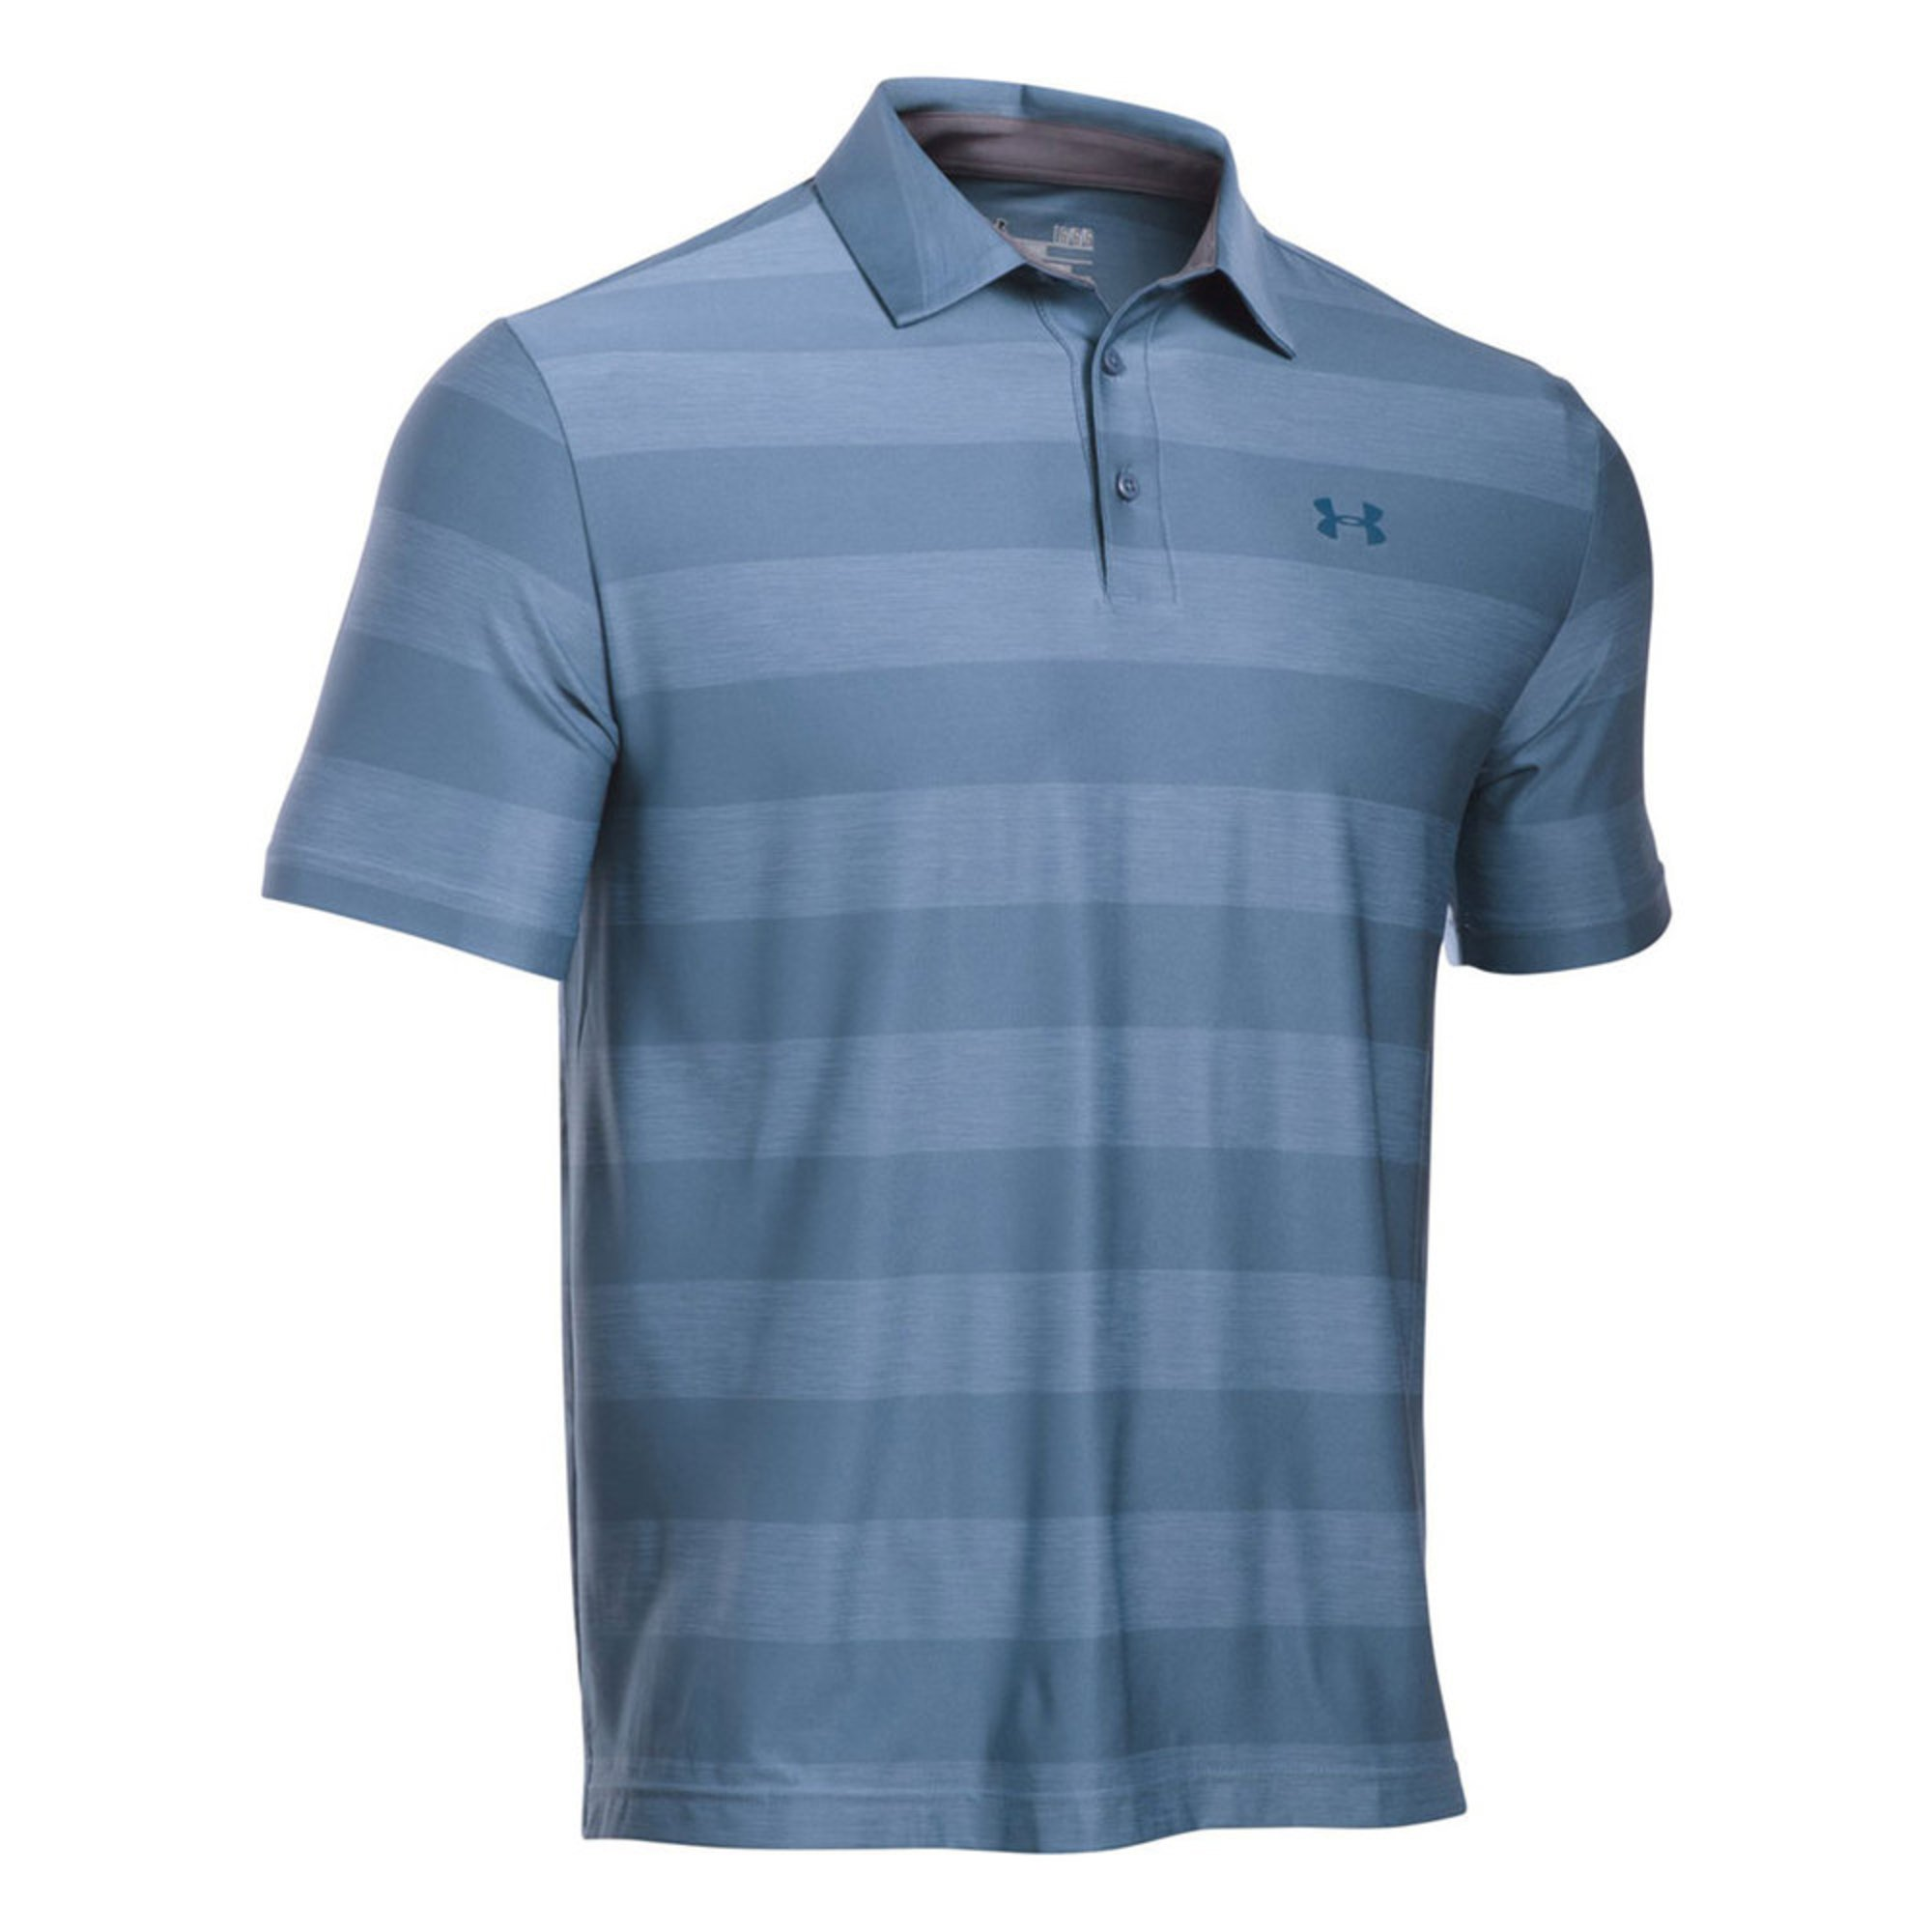 Under armour men 39 s playoff polo men shop your navy for Under armour men s shirts clearance